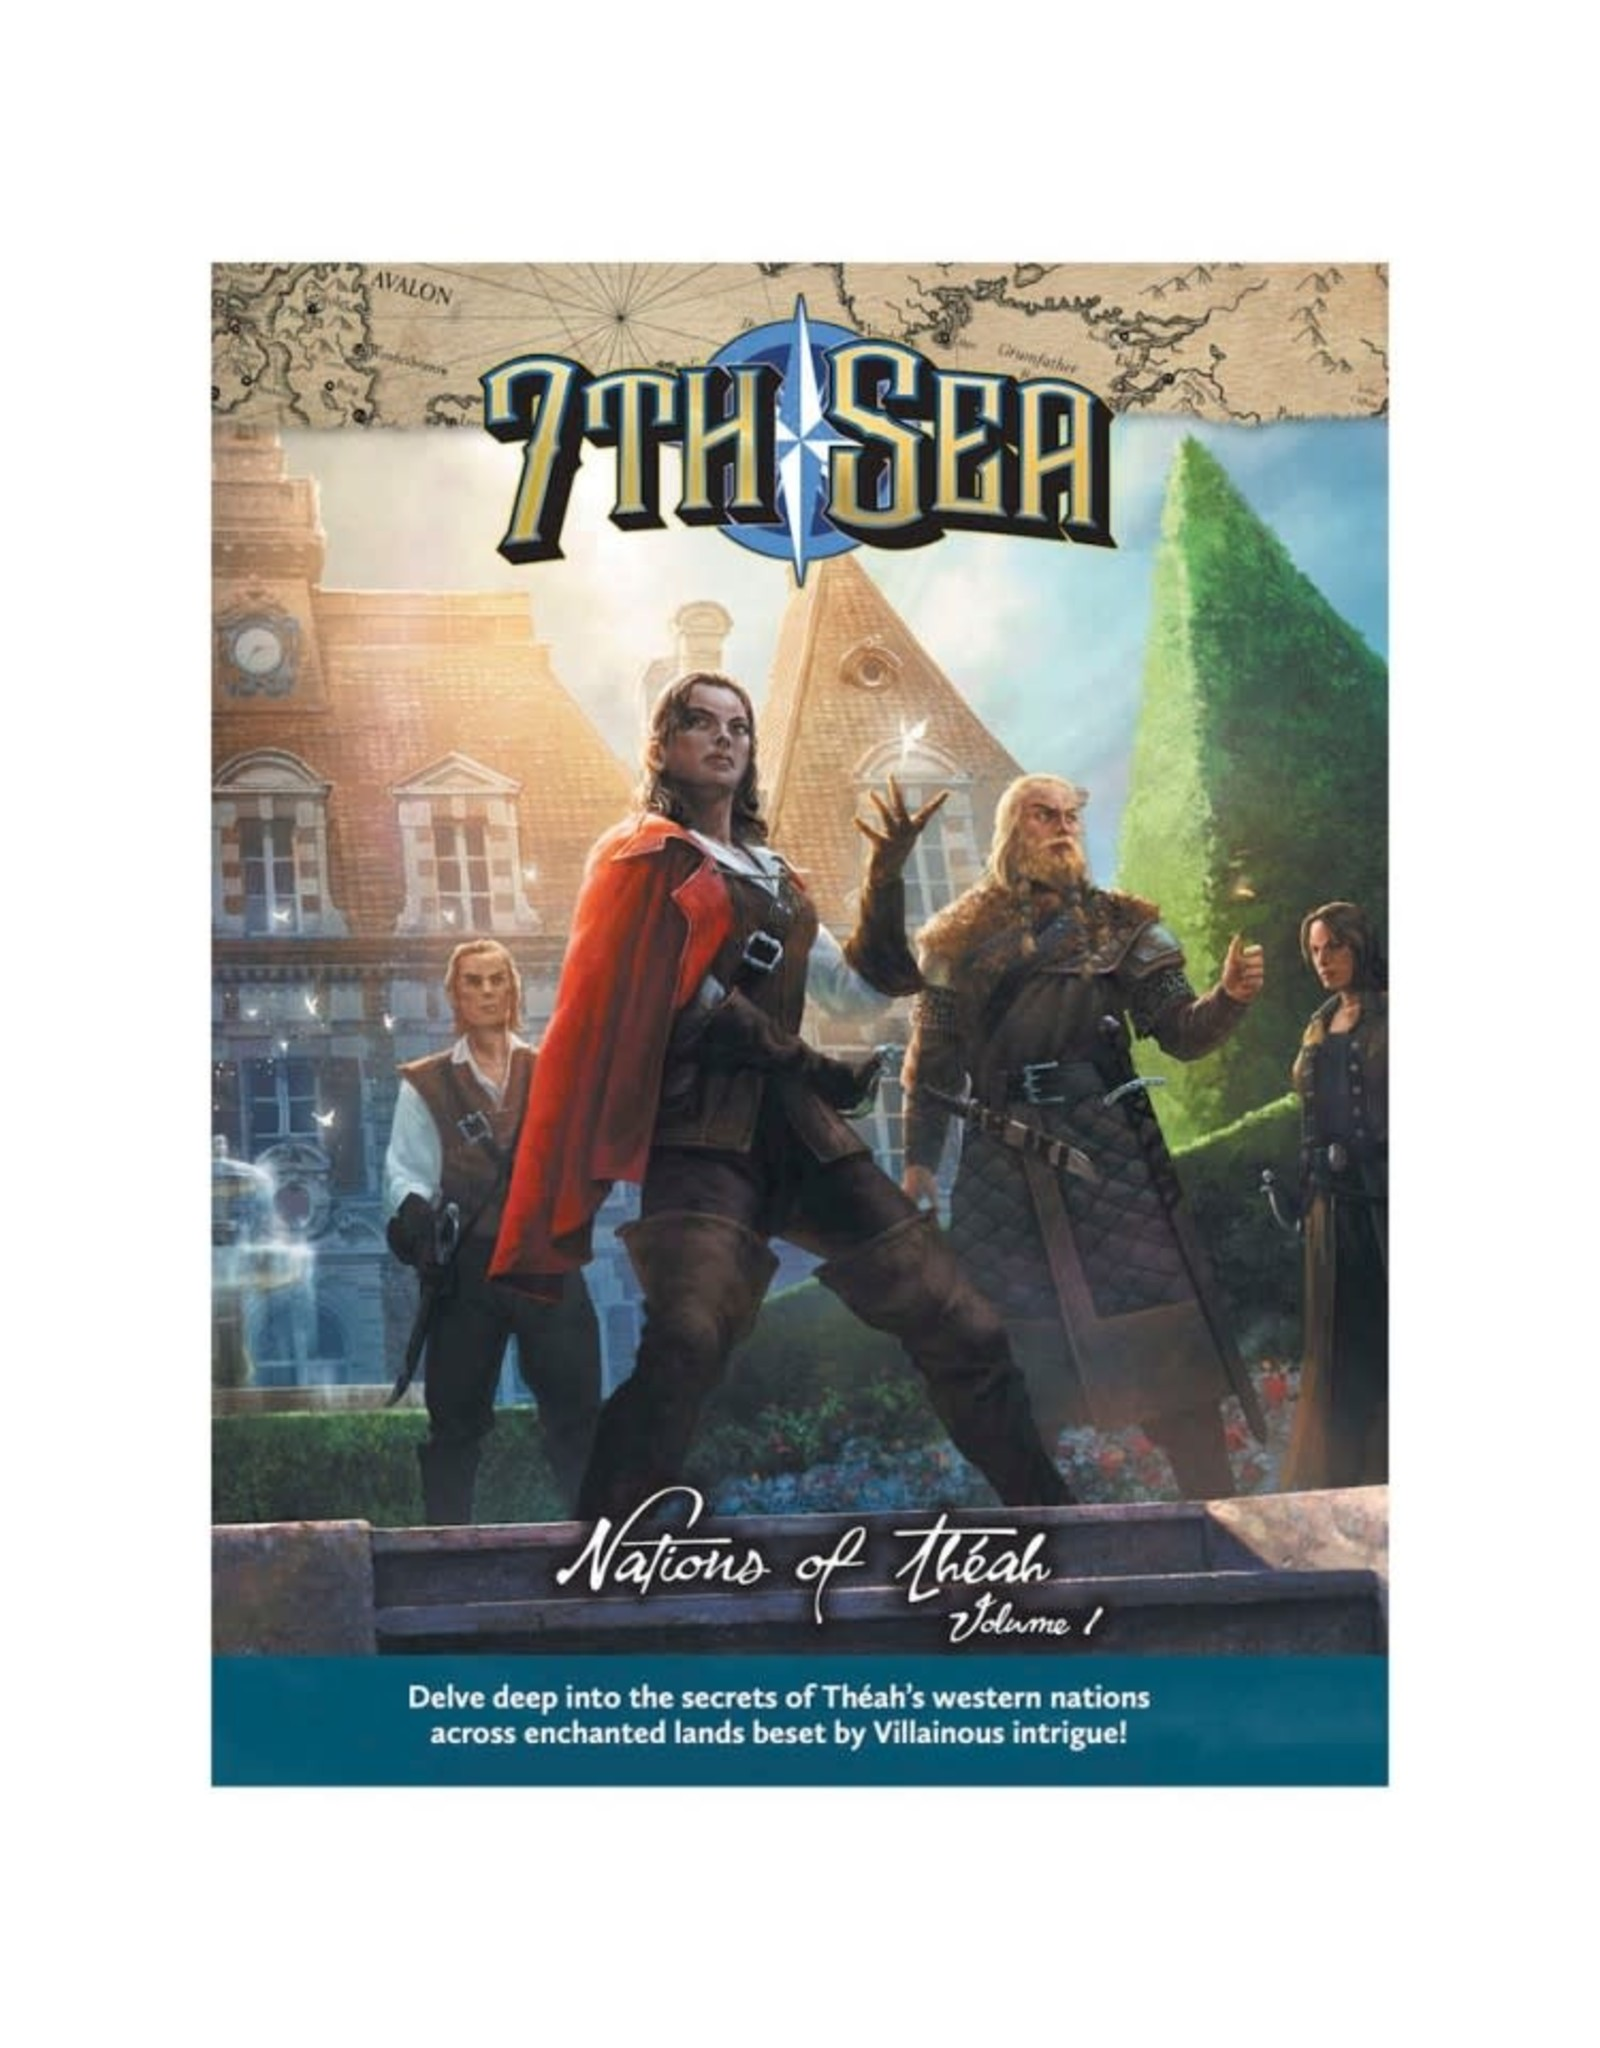 John Wick Presents 7th Sea RPG: 2nd Edition - Nations of Theah V2 Hardcover